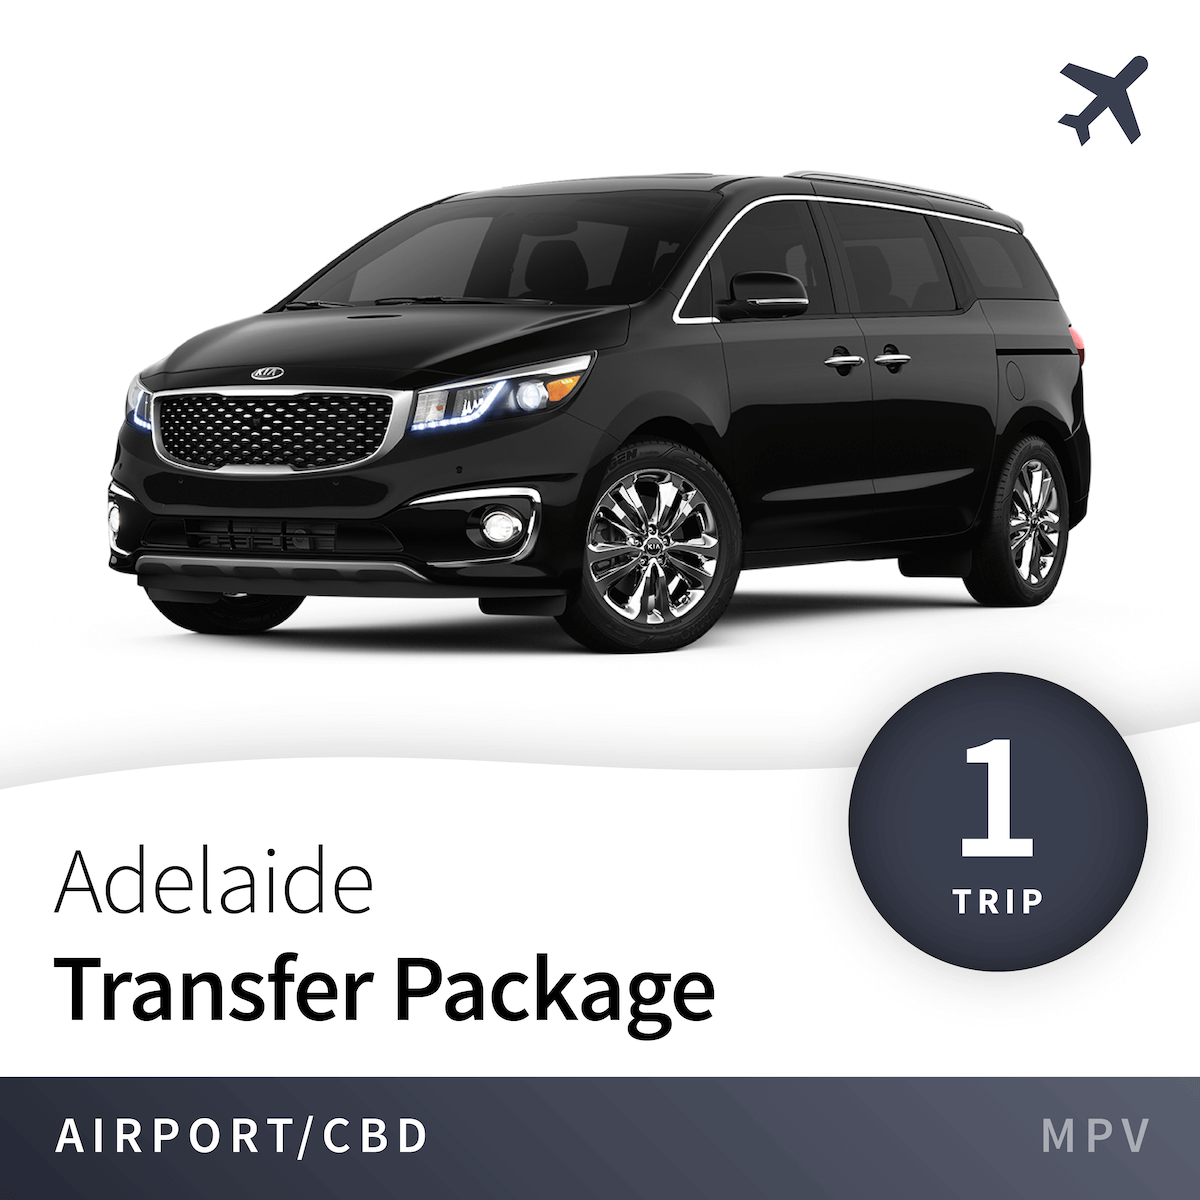 Adelaide Airport Transfer Package - MPV (1 Trip) 1